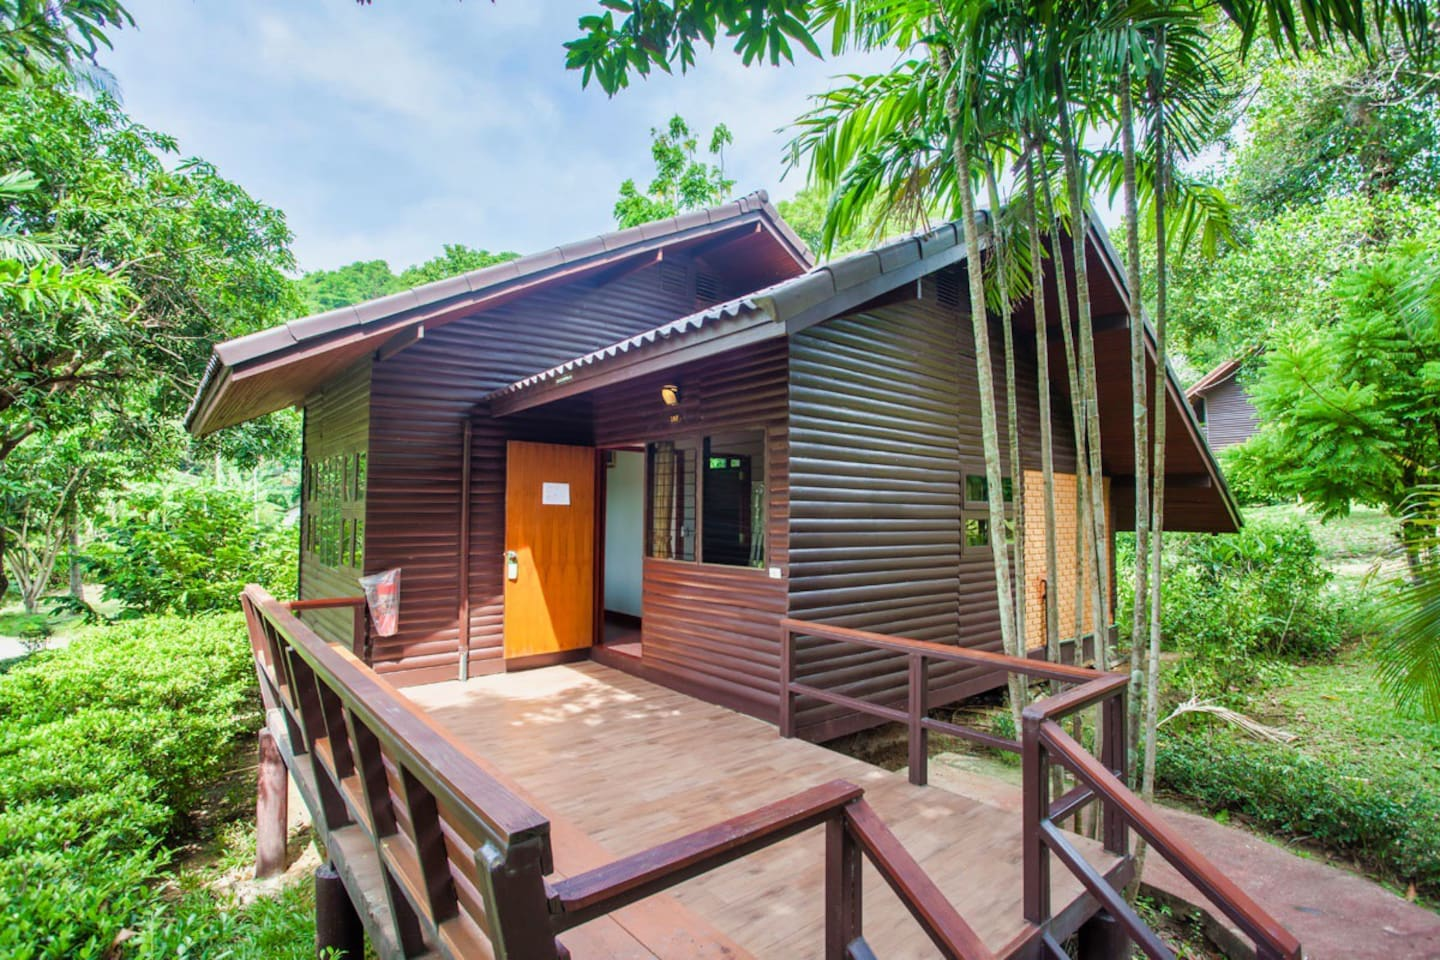 a classic Thai design with a spacious balcony overlooking the lush gardens and a living area inside to relax with air-conditioning.